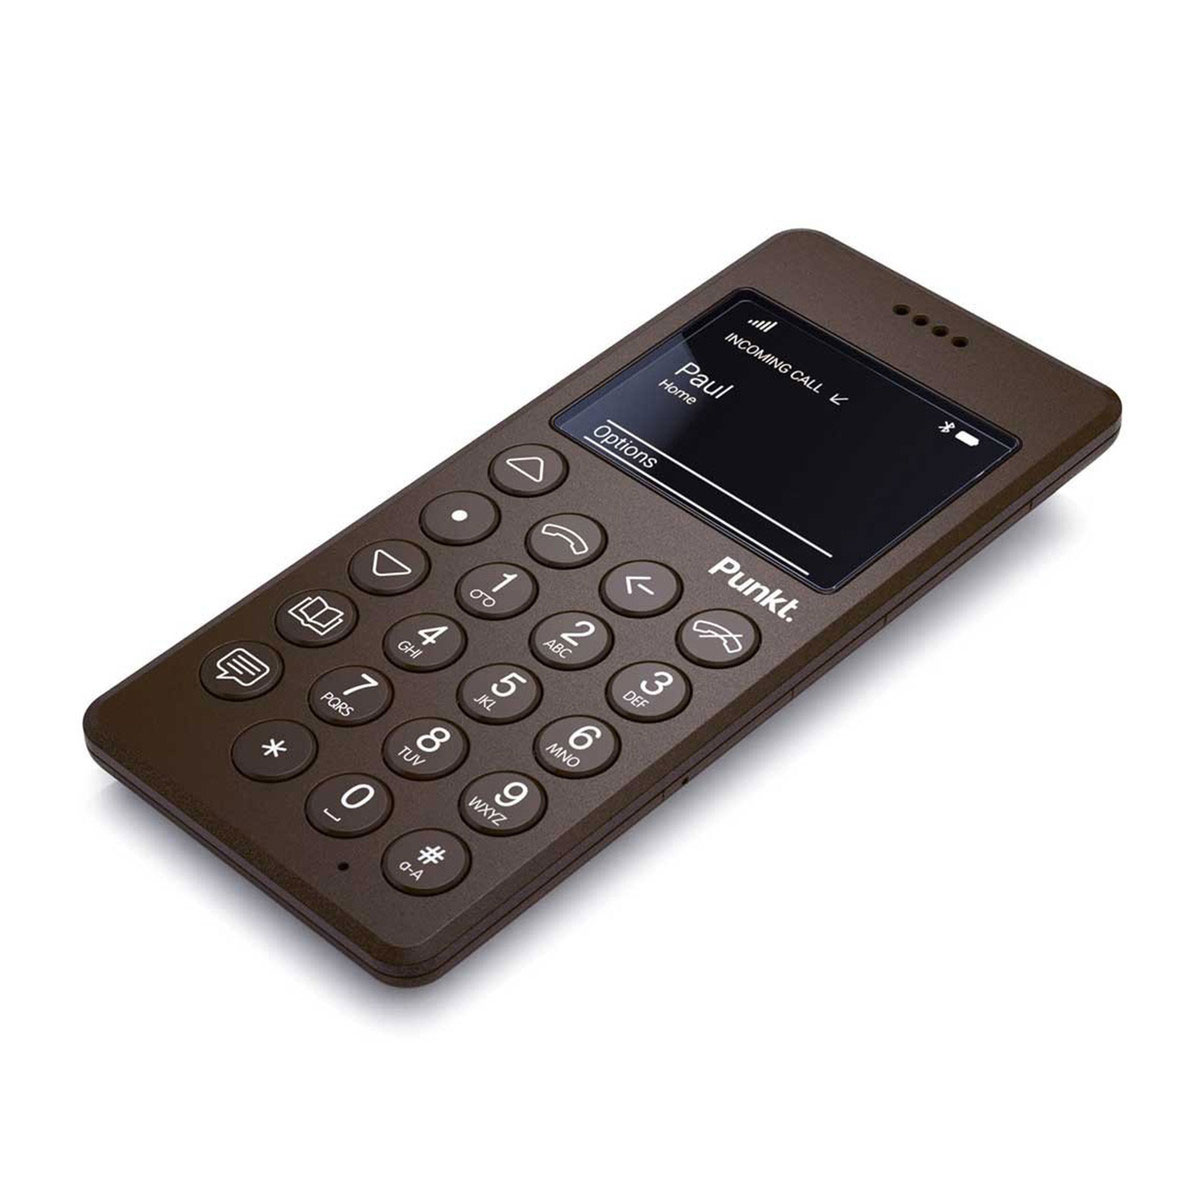 Punkt Jasper Morrison Mp 01 Mobile Phone Brown Panik